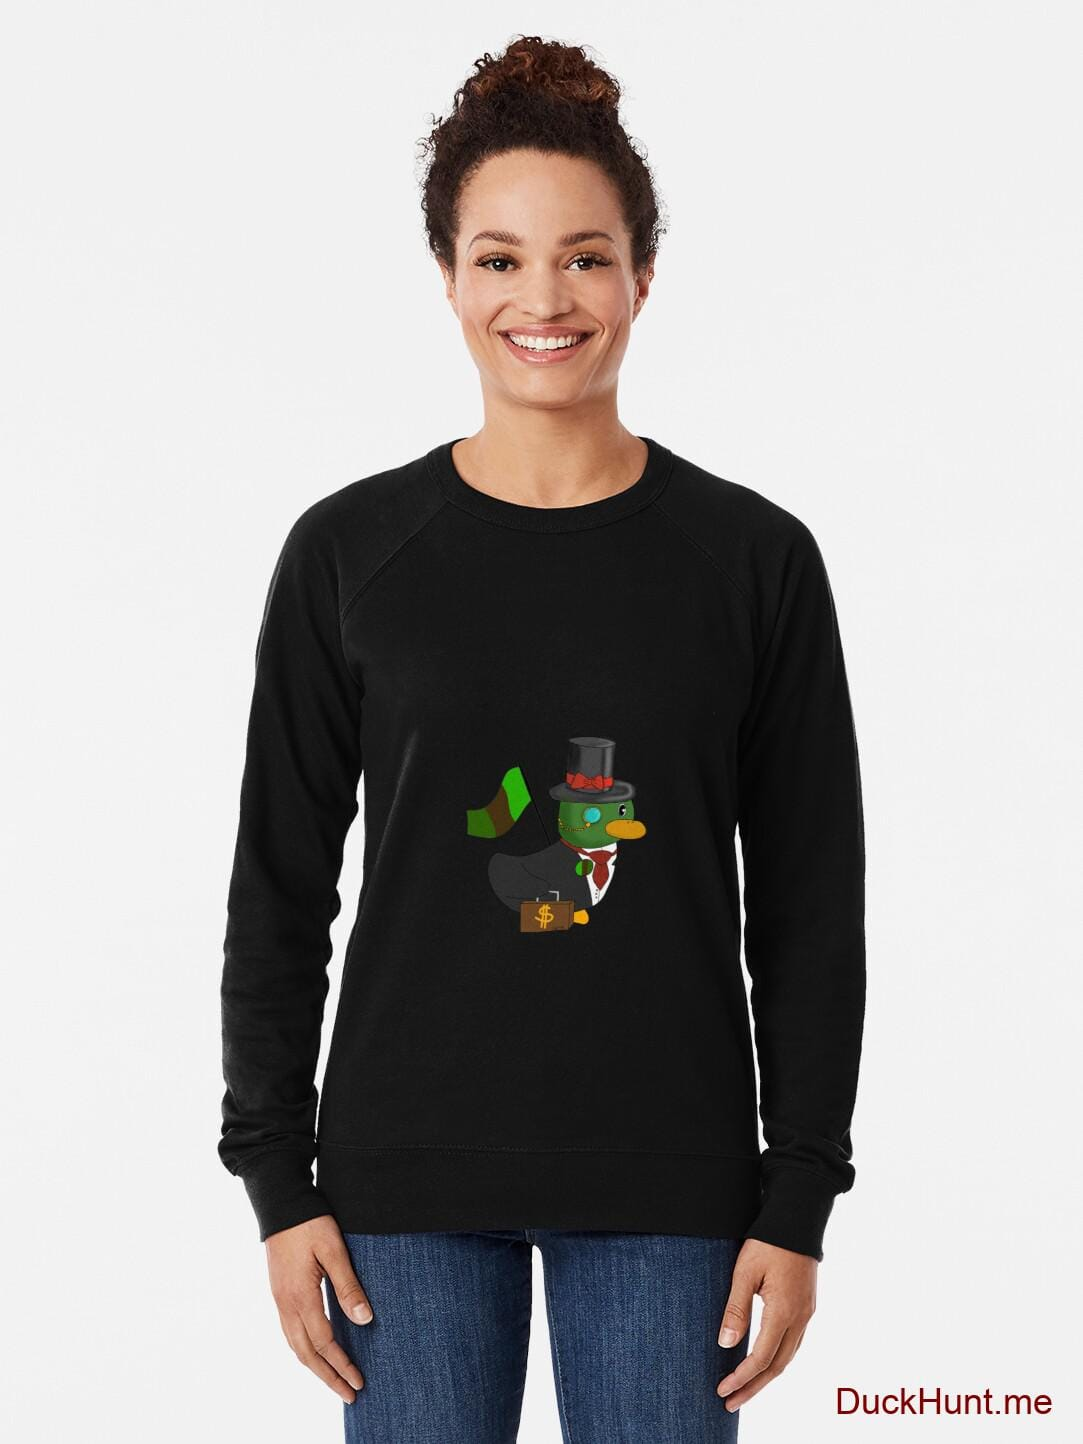 Golden Duck Black Lightweight Sweatshirt alternative image 1